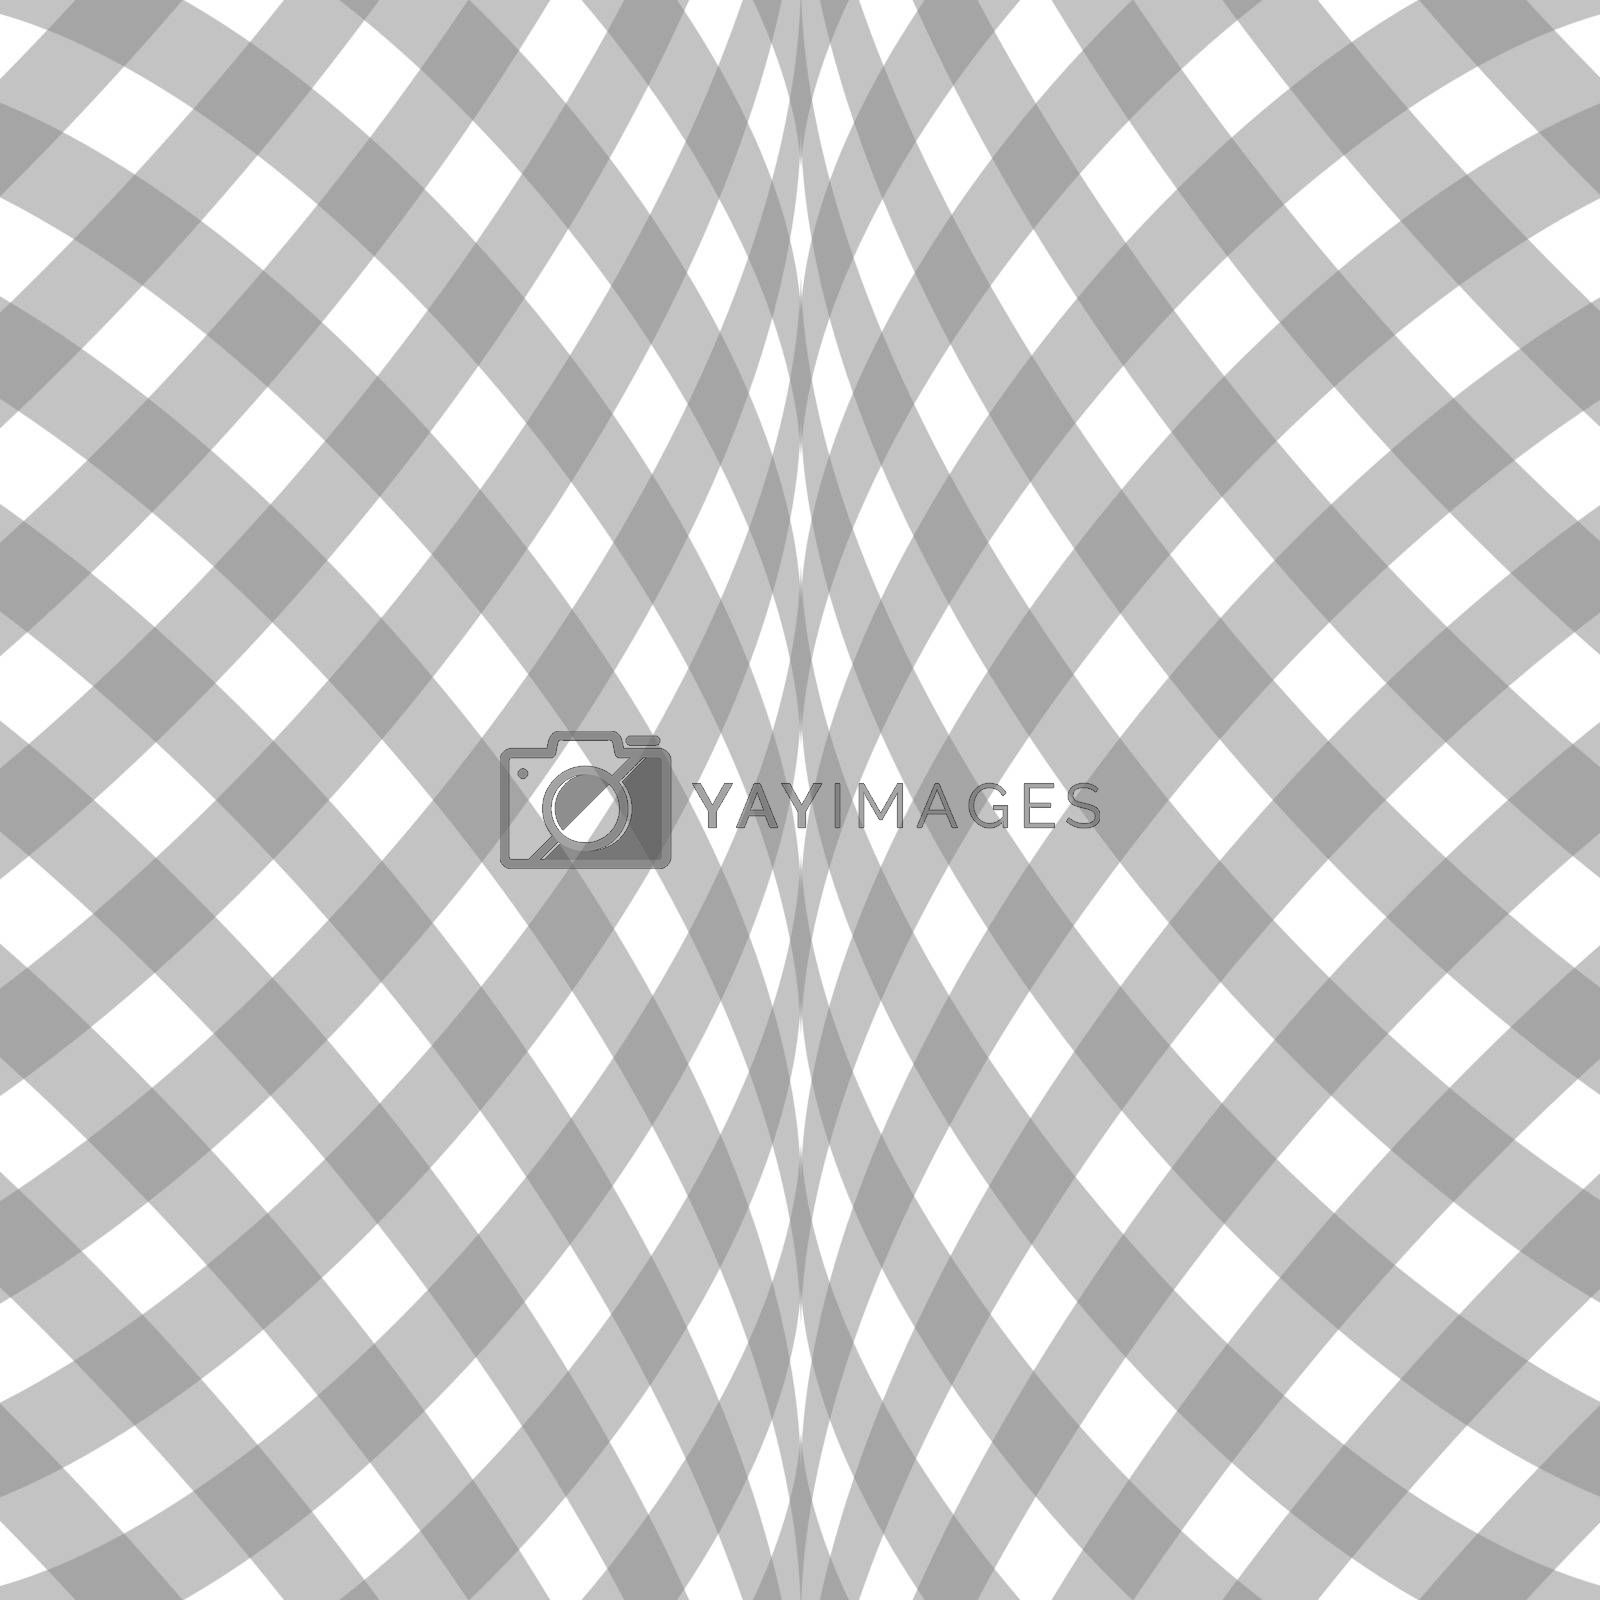 Abstract checkered background white and gray diagonal pattern.